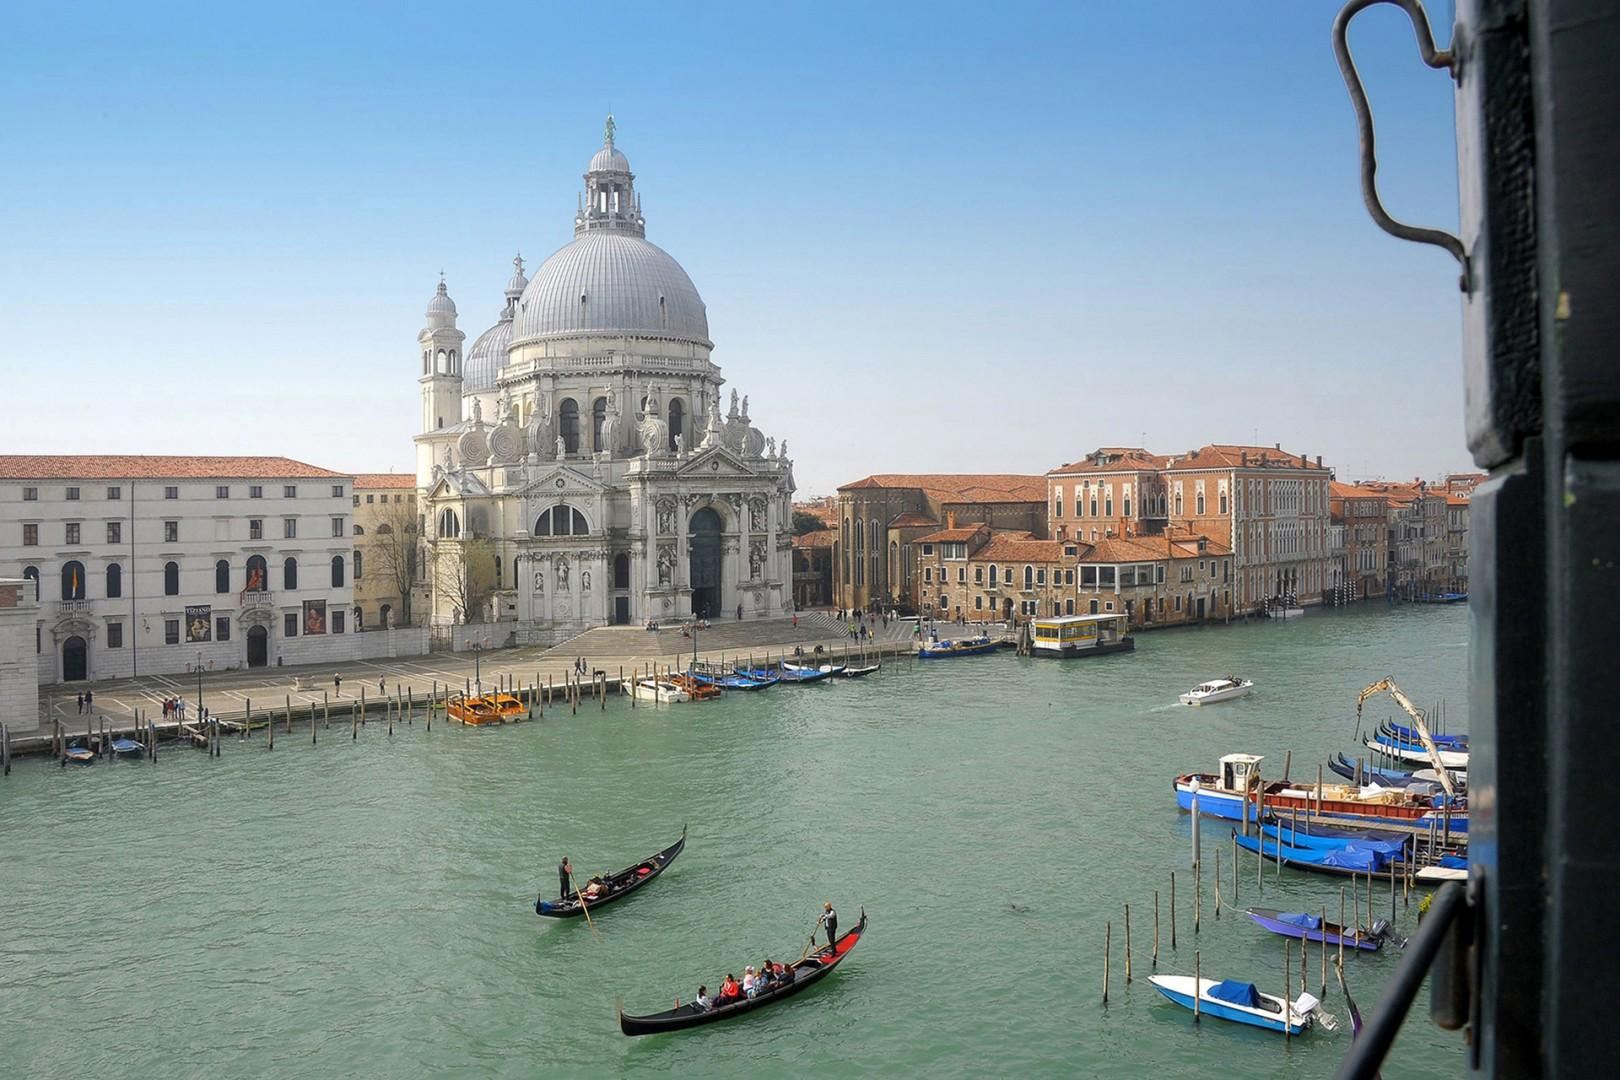 Bedroom and living room view of the cathedral of Santa Maria della Salute across the Grand Canal.